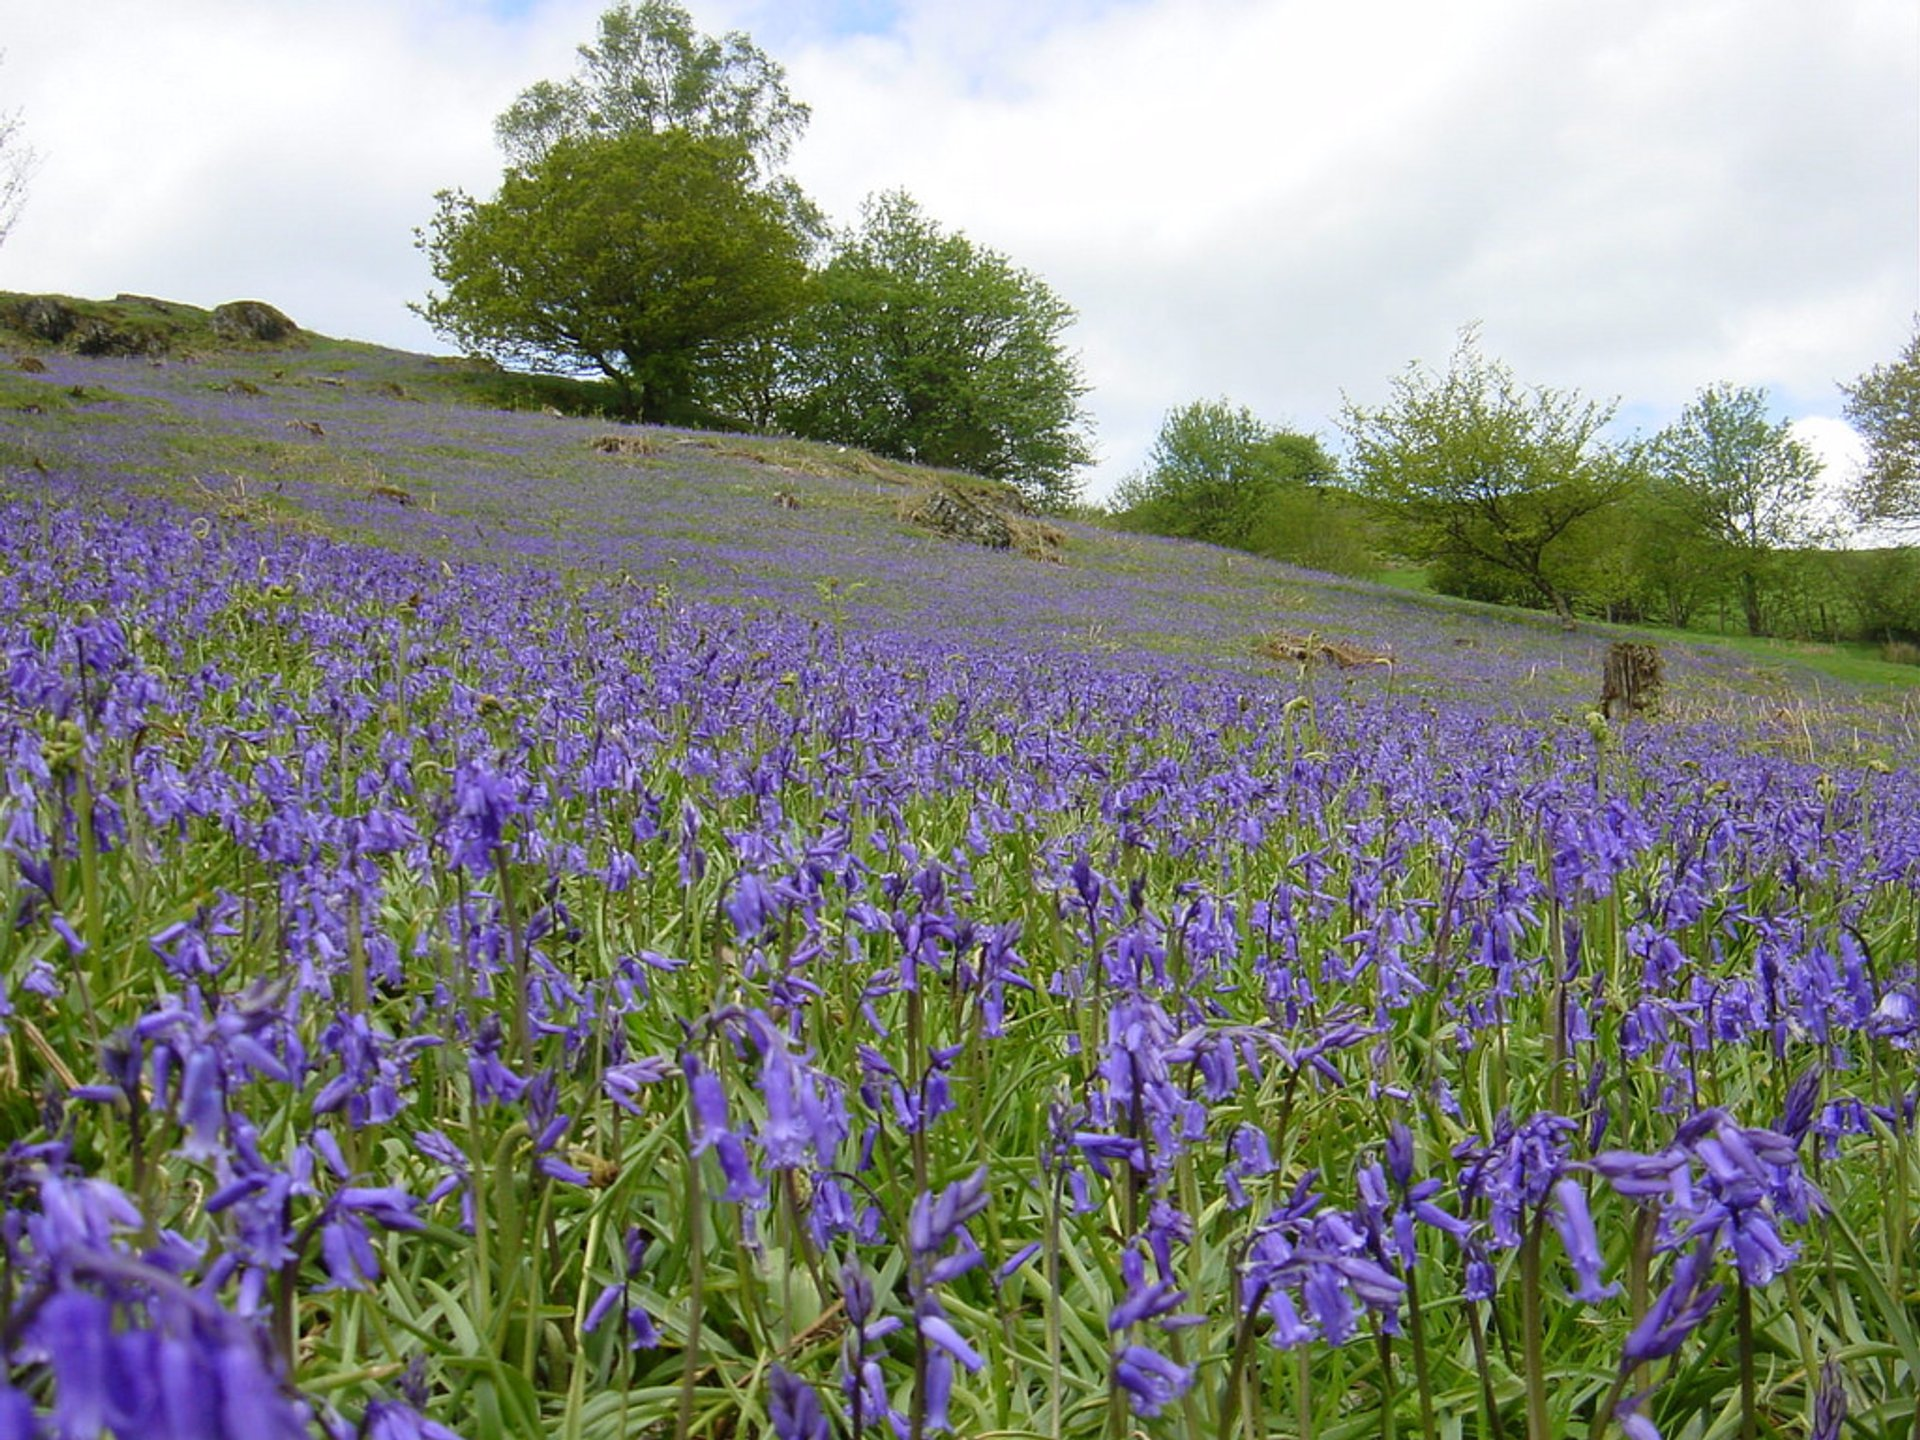 Bluebells in Bloom in Wales 2020 - Best Time